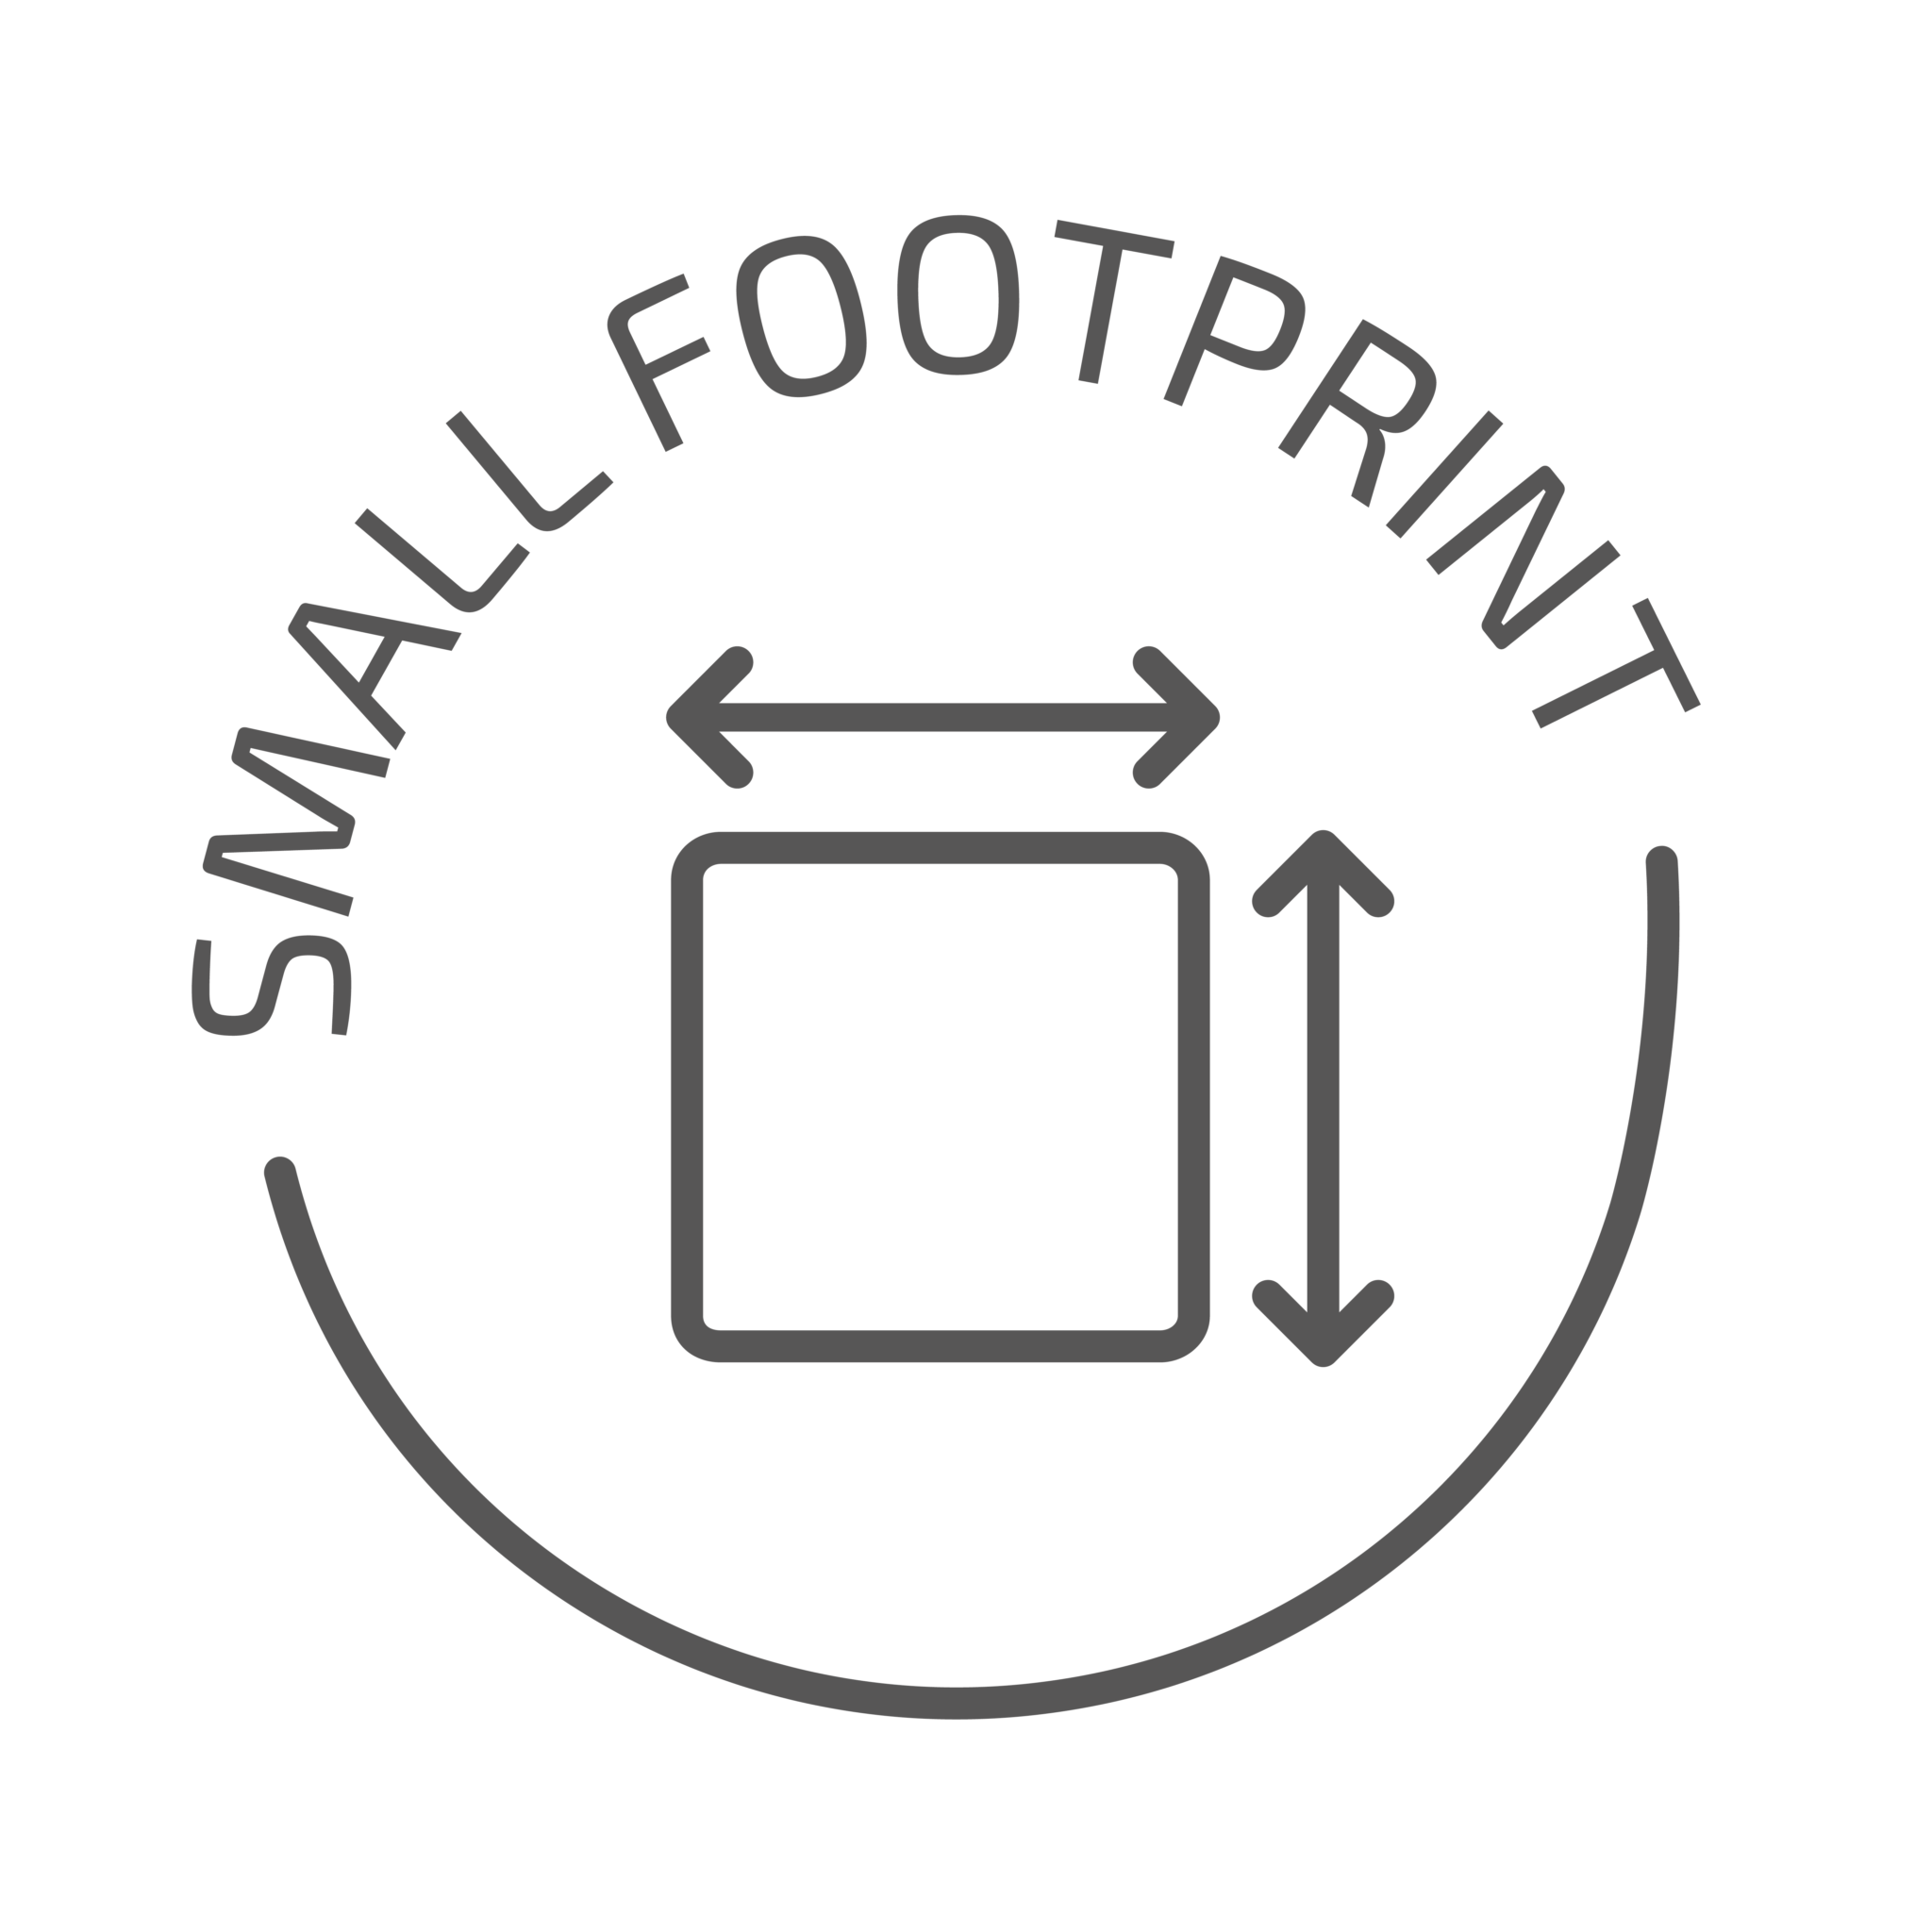 JASA Small Footprint iconen